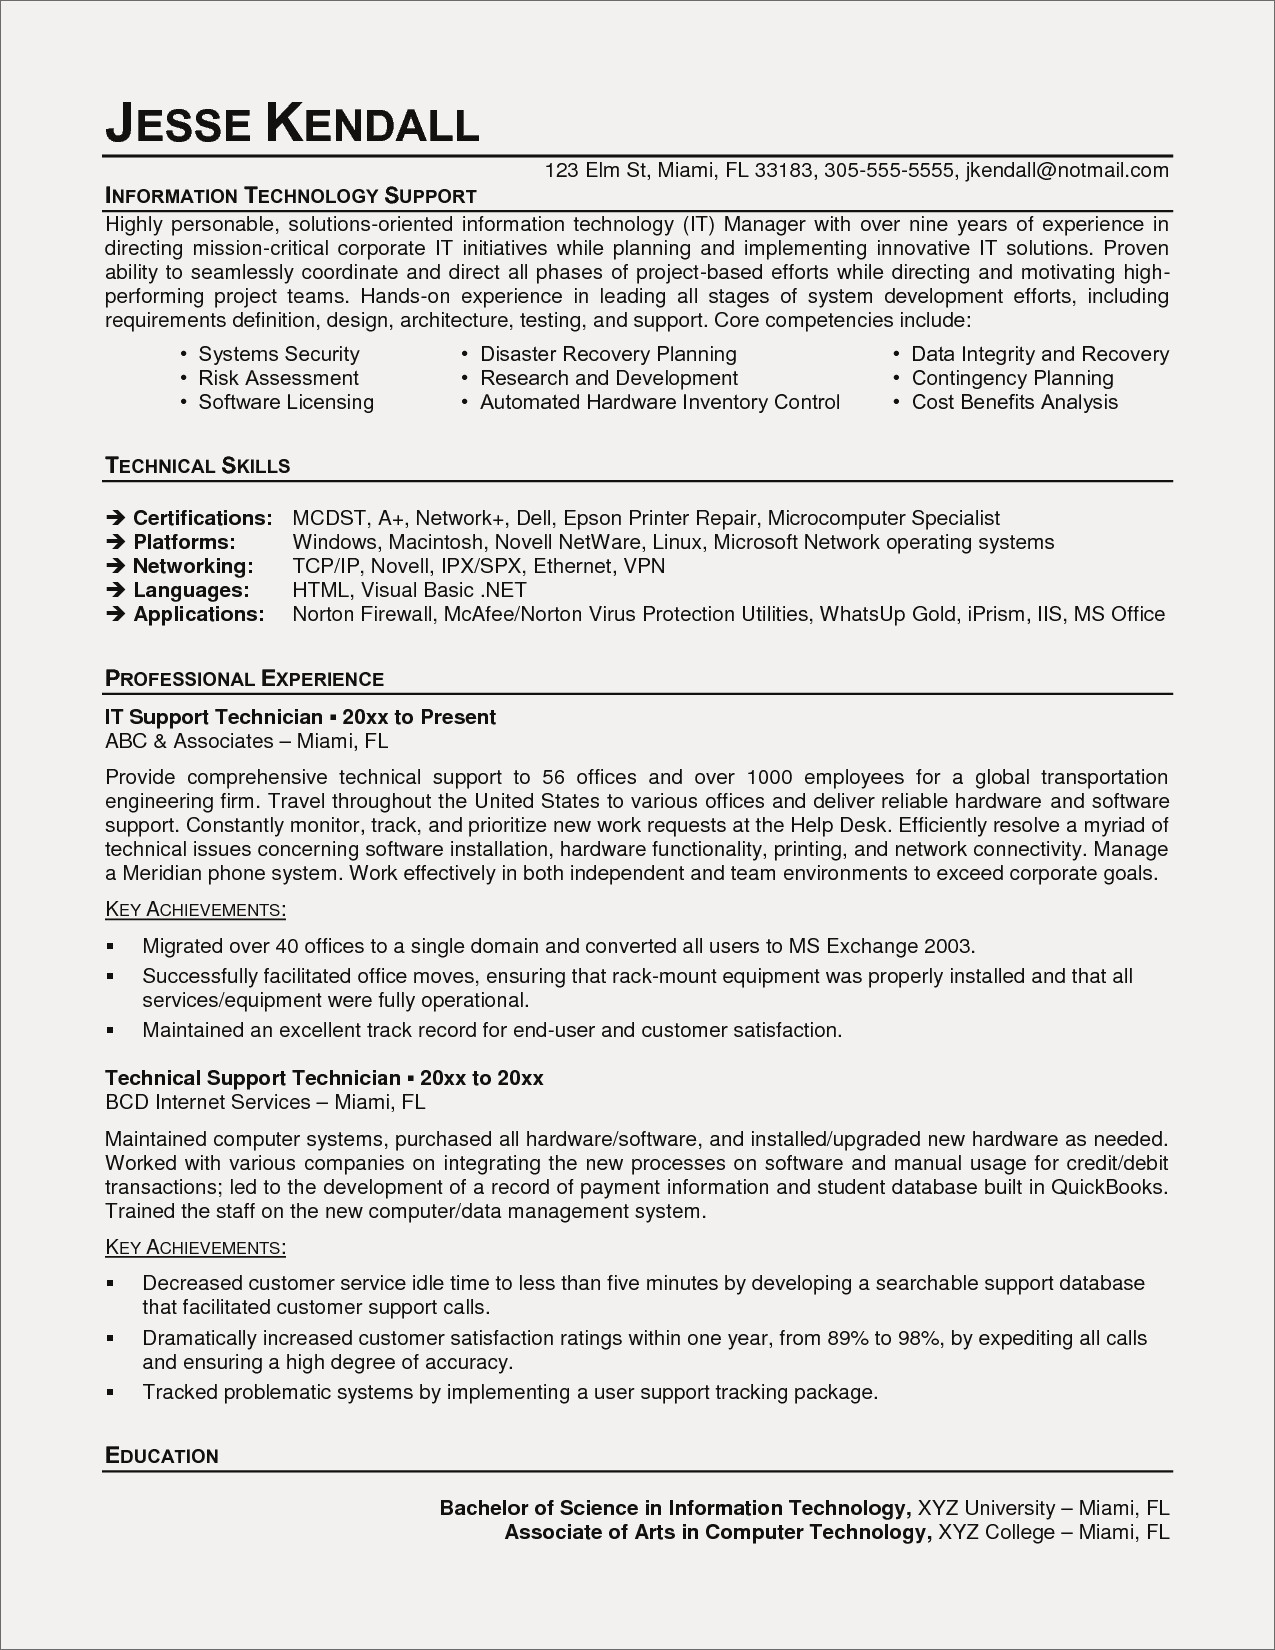 automotive mechanic resume example-Automotive Resume New Auto Mechanic Resume American Resume Sample New Student Resume 0d 13-g